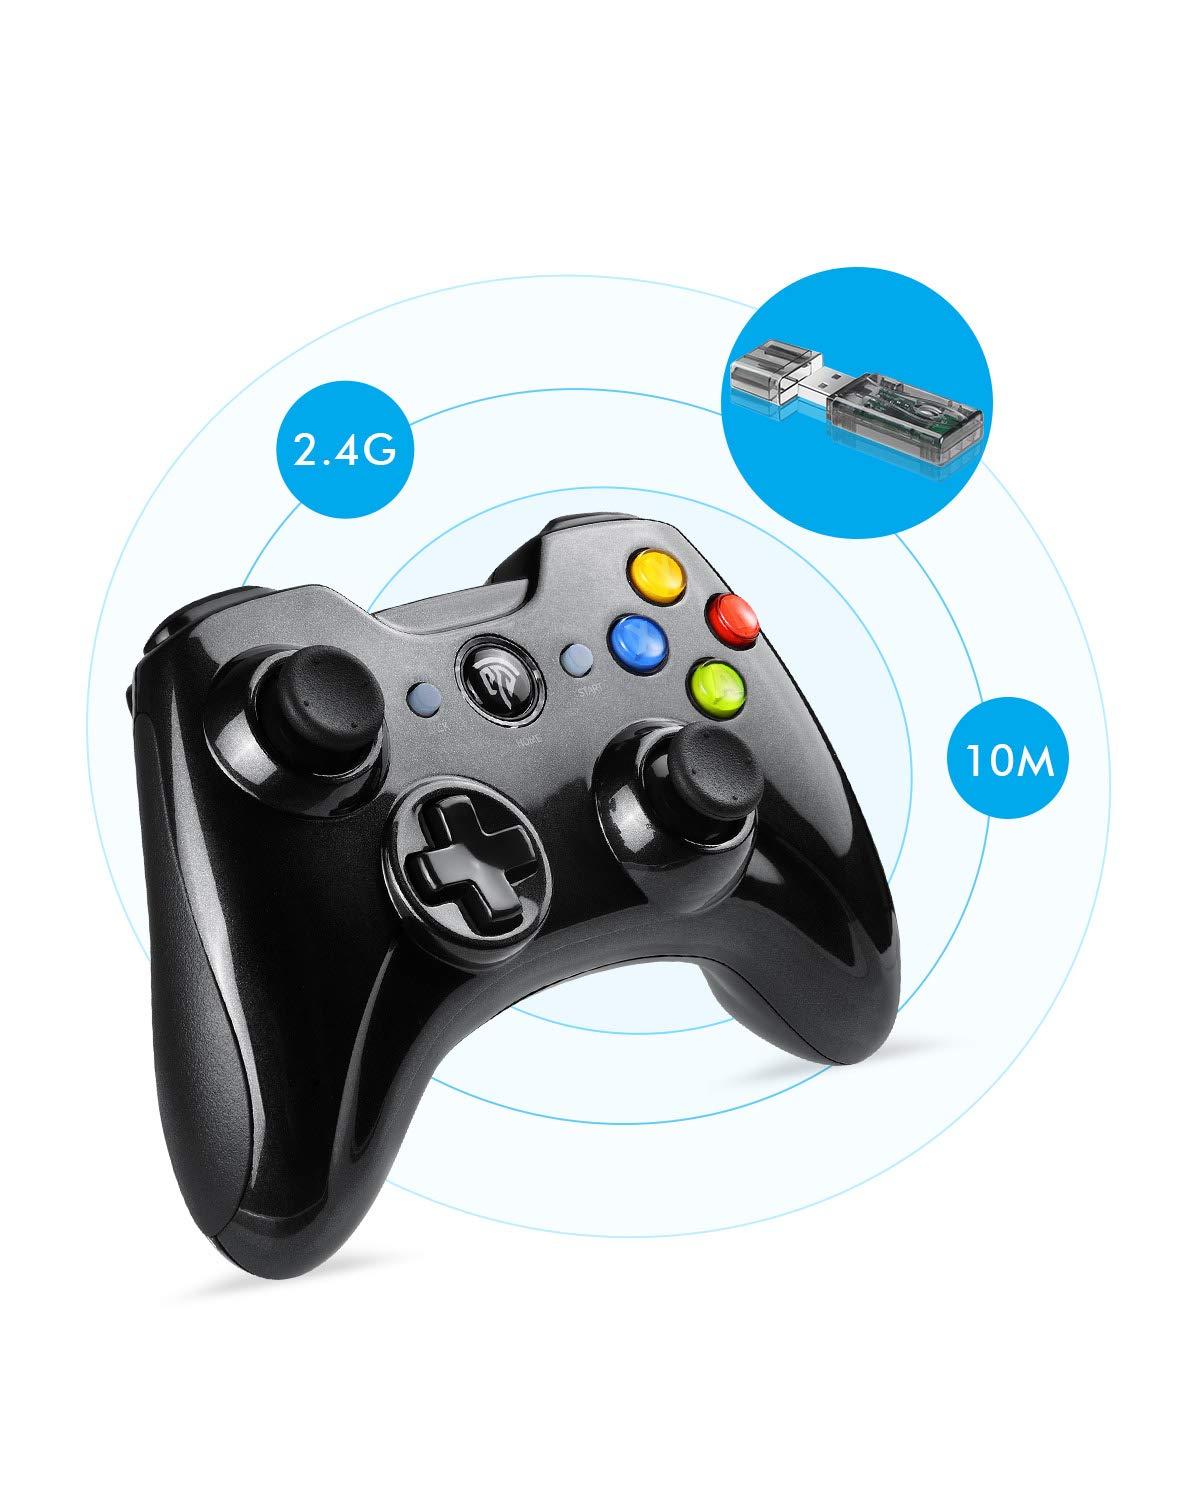 Wireless Game Controller, EasySMX KC-8236 2.4G Wireless Gamepad, Dual Vibration, 8 Hours of Playing for PS3/PC/Android Phones, Tablets, TV Box